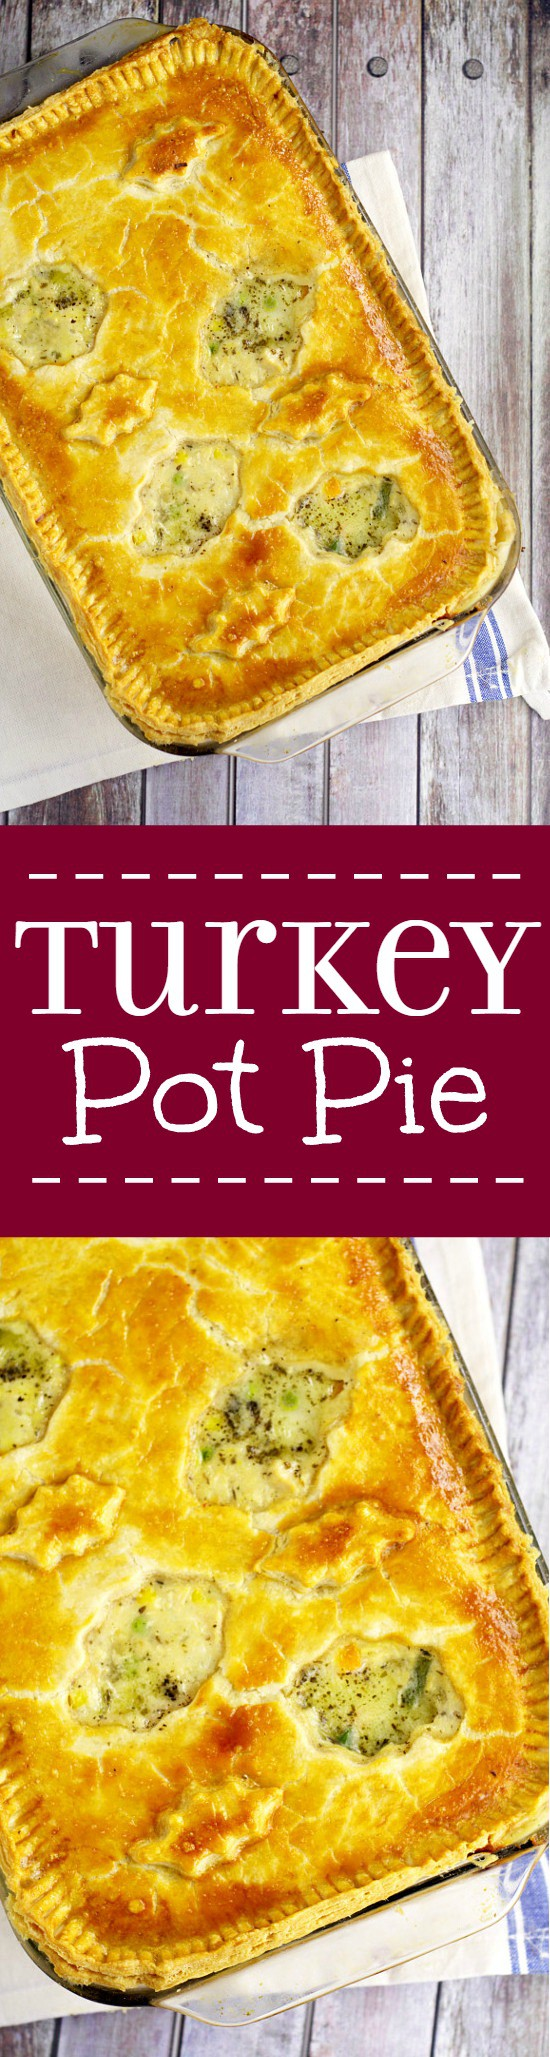 The BEST way to use up leftover turkey is this homemade Turkey Pot Pie recipe with creamy comfort food pot pie filling, turkey, vegetables, and golden flaky crust. Great for a delicious family dinner recipe. Mmmm... Looks delicious!